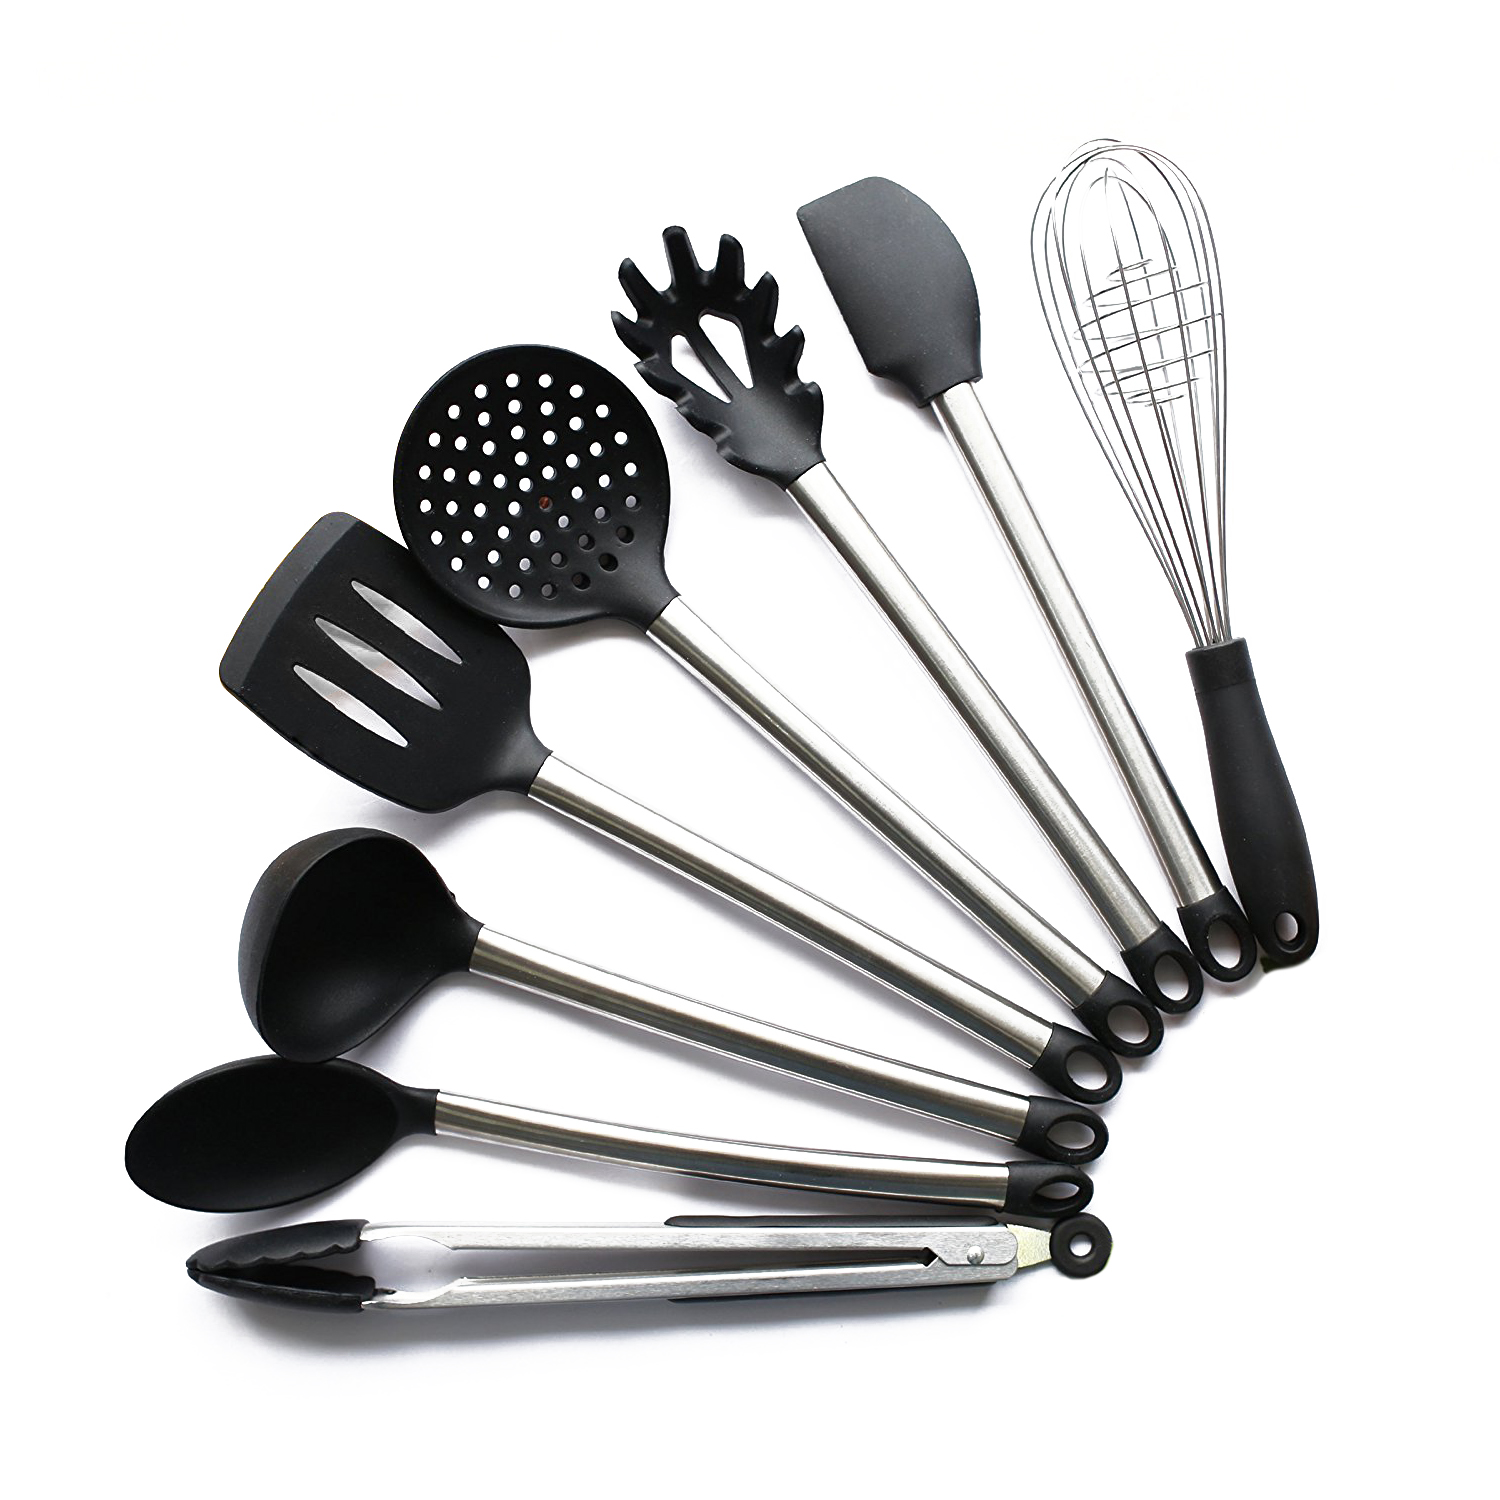 US $16.62 16% OFF|HOT SALE 8 Piece Kitchen Utensil Set Stainless Steel and  Black Silicone Modern Nonstick Utensils Cooking Tools-in Cooking Tool Sets  ...